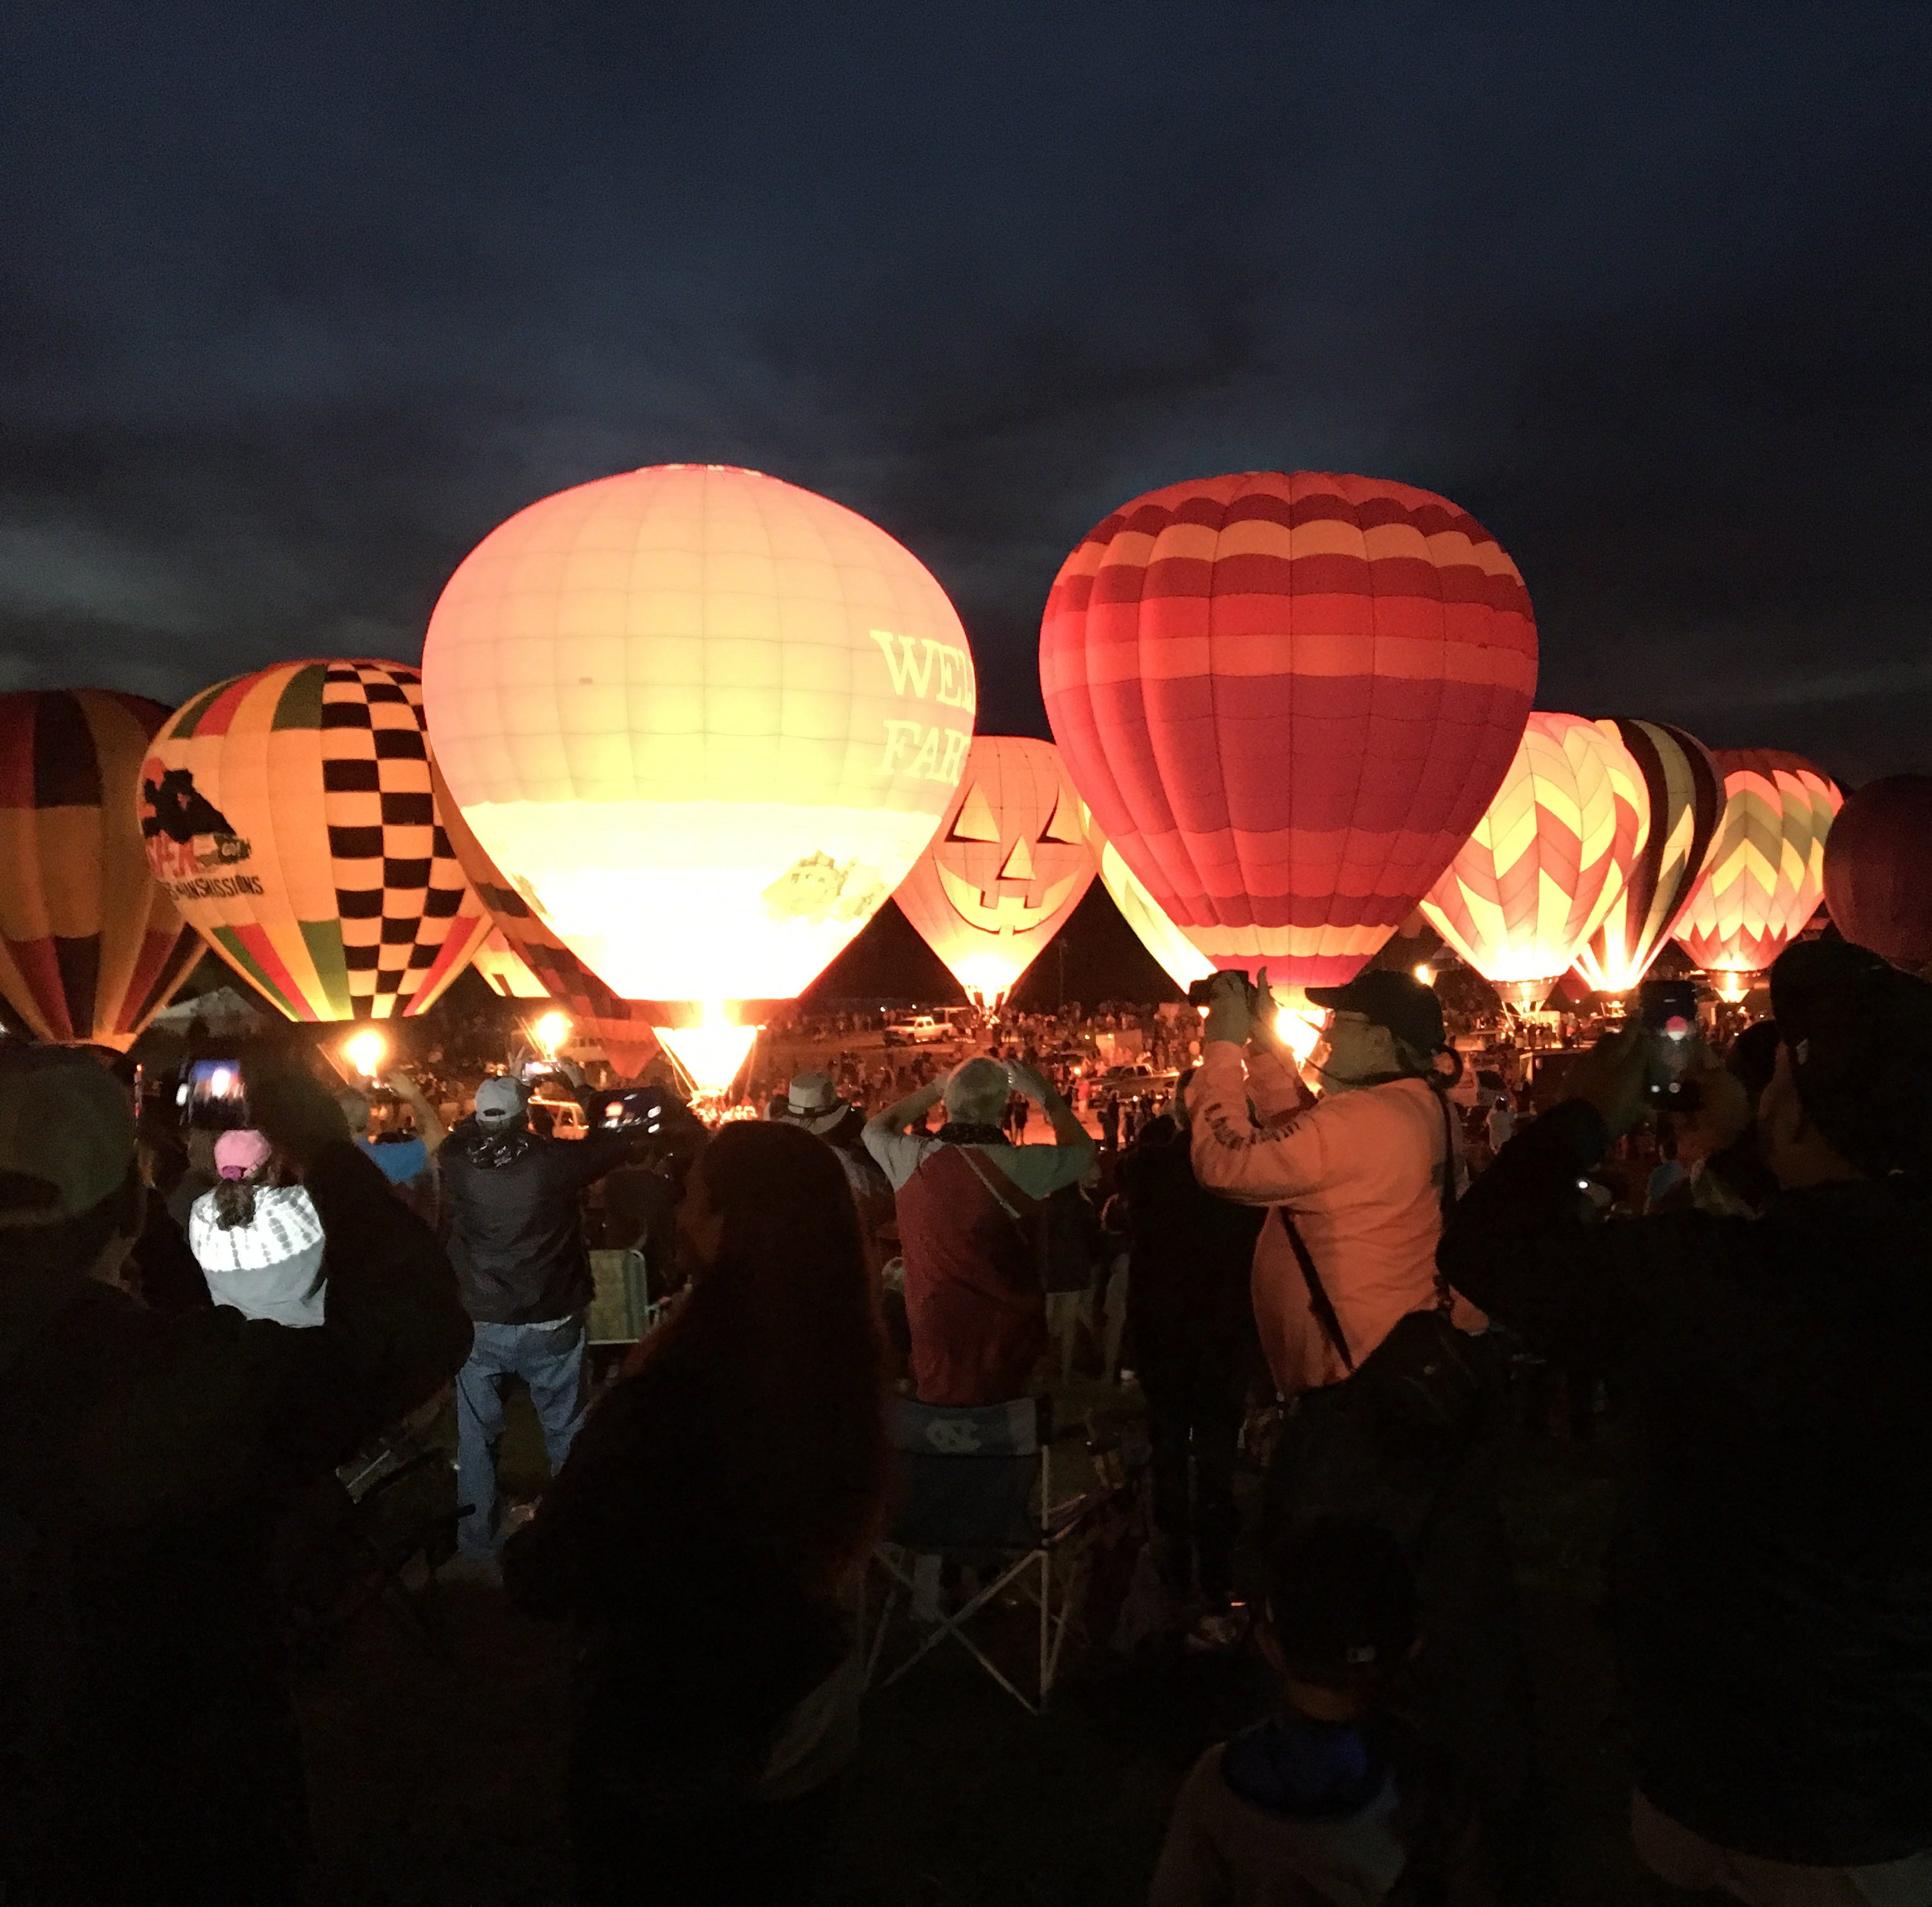 Travel: Carolina BalloonFest lights up autumn skies